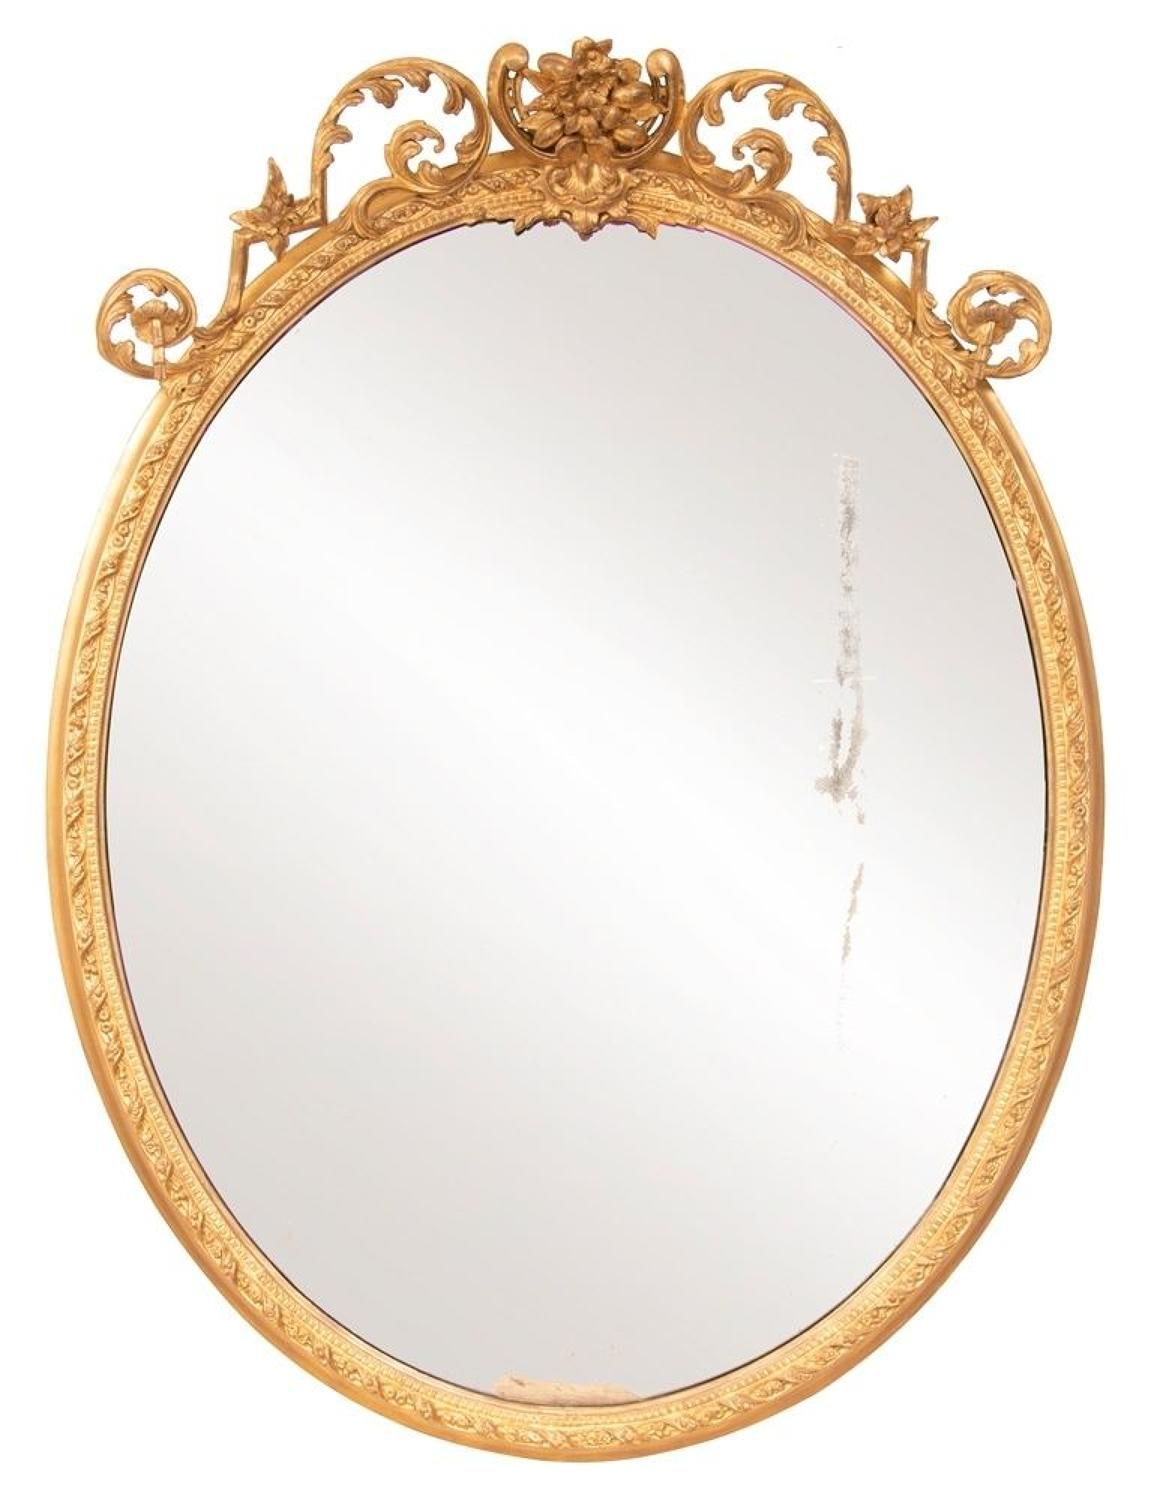 Antique Gilded Oval Mirror c.1820